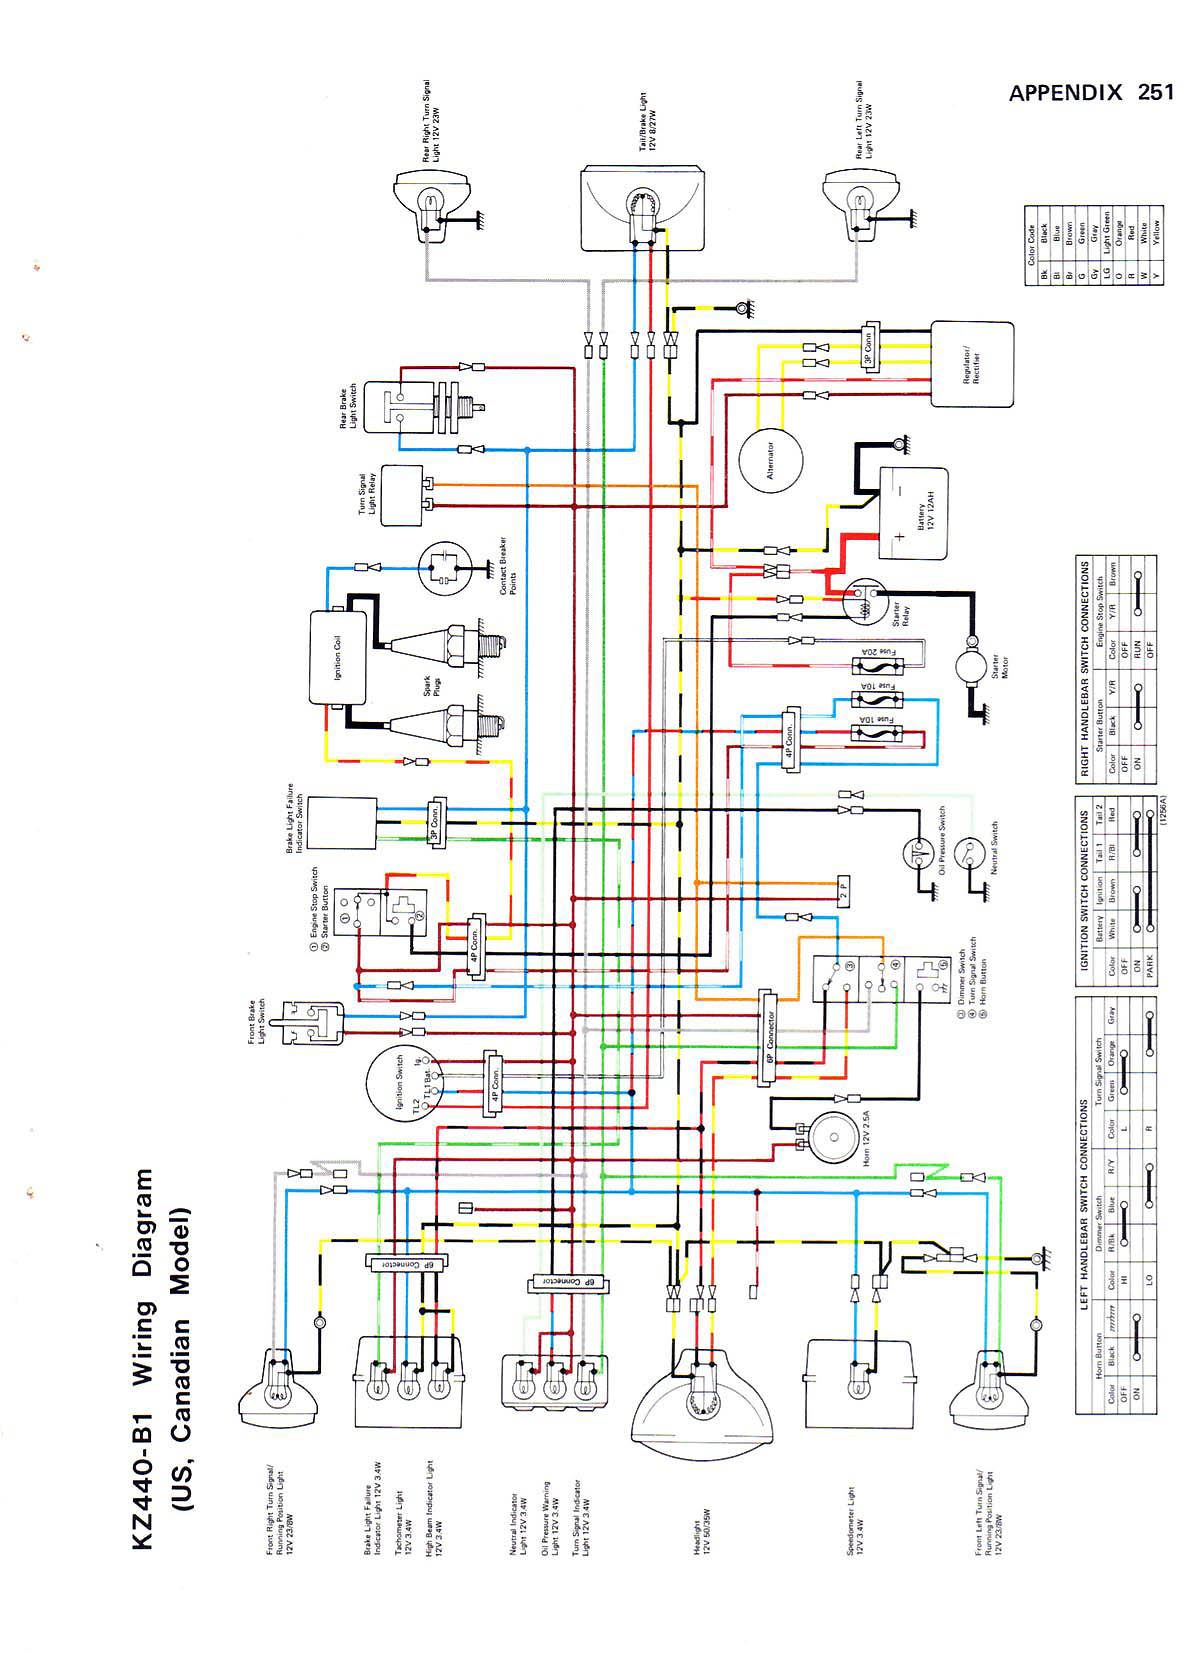 Kz440 Wiring Diagram Completed Diagrams Evo Powerboard